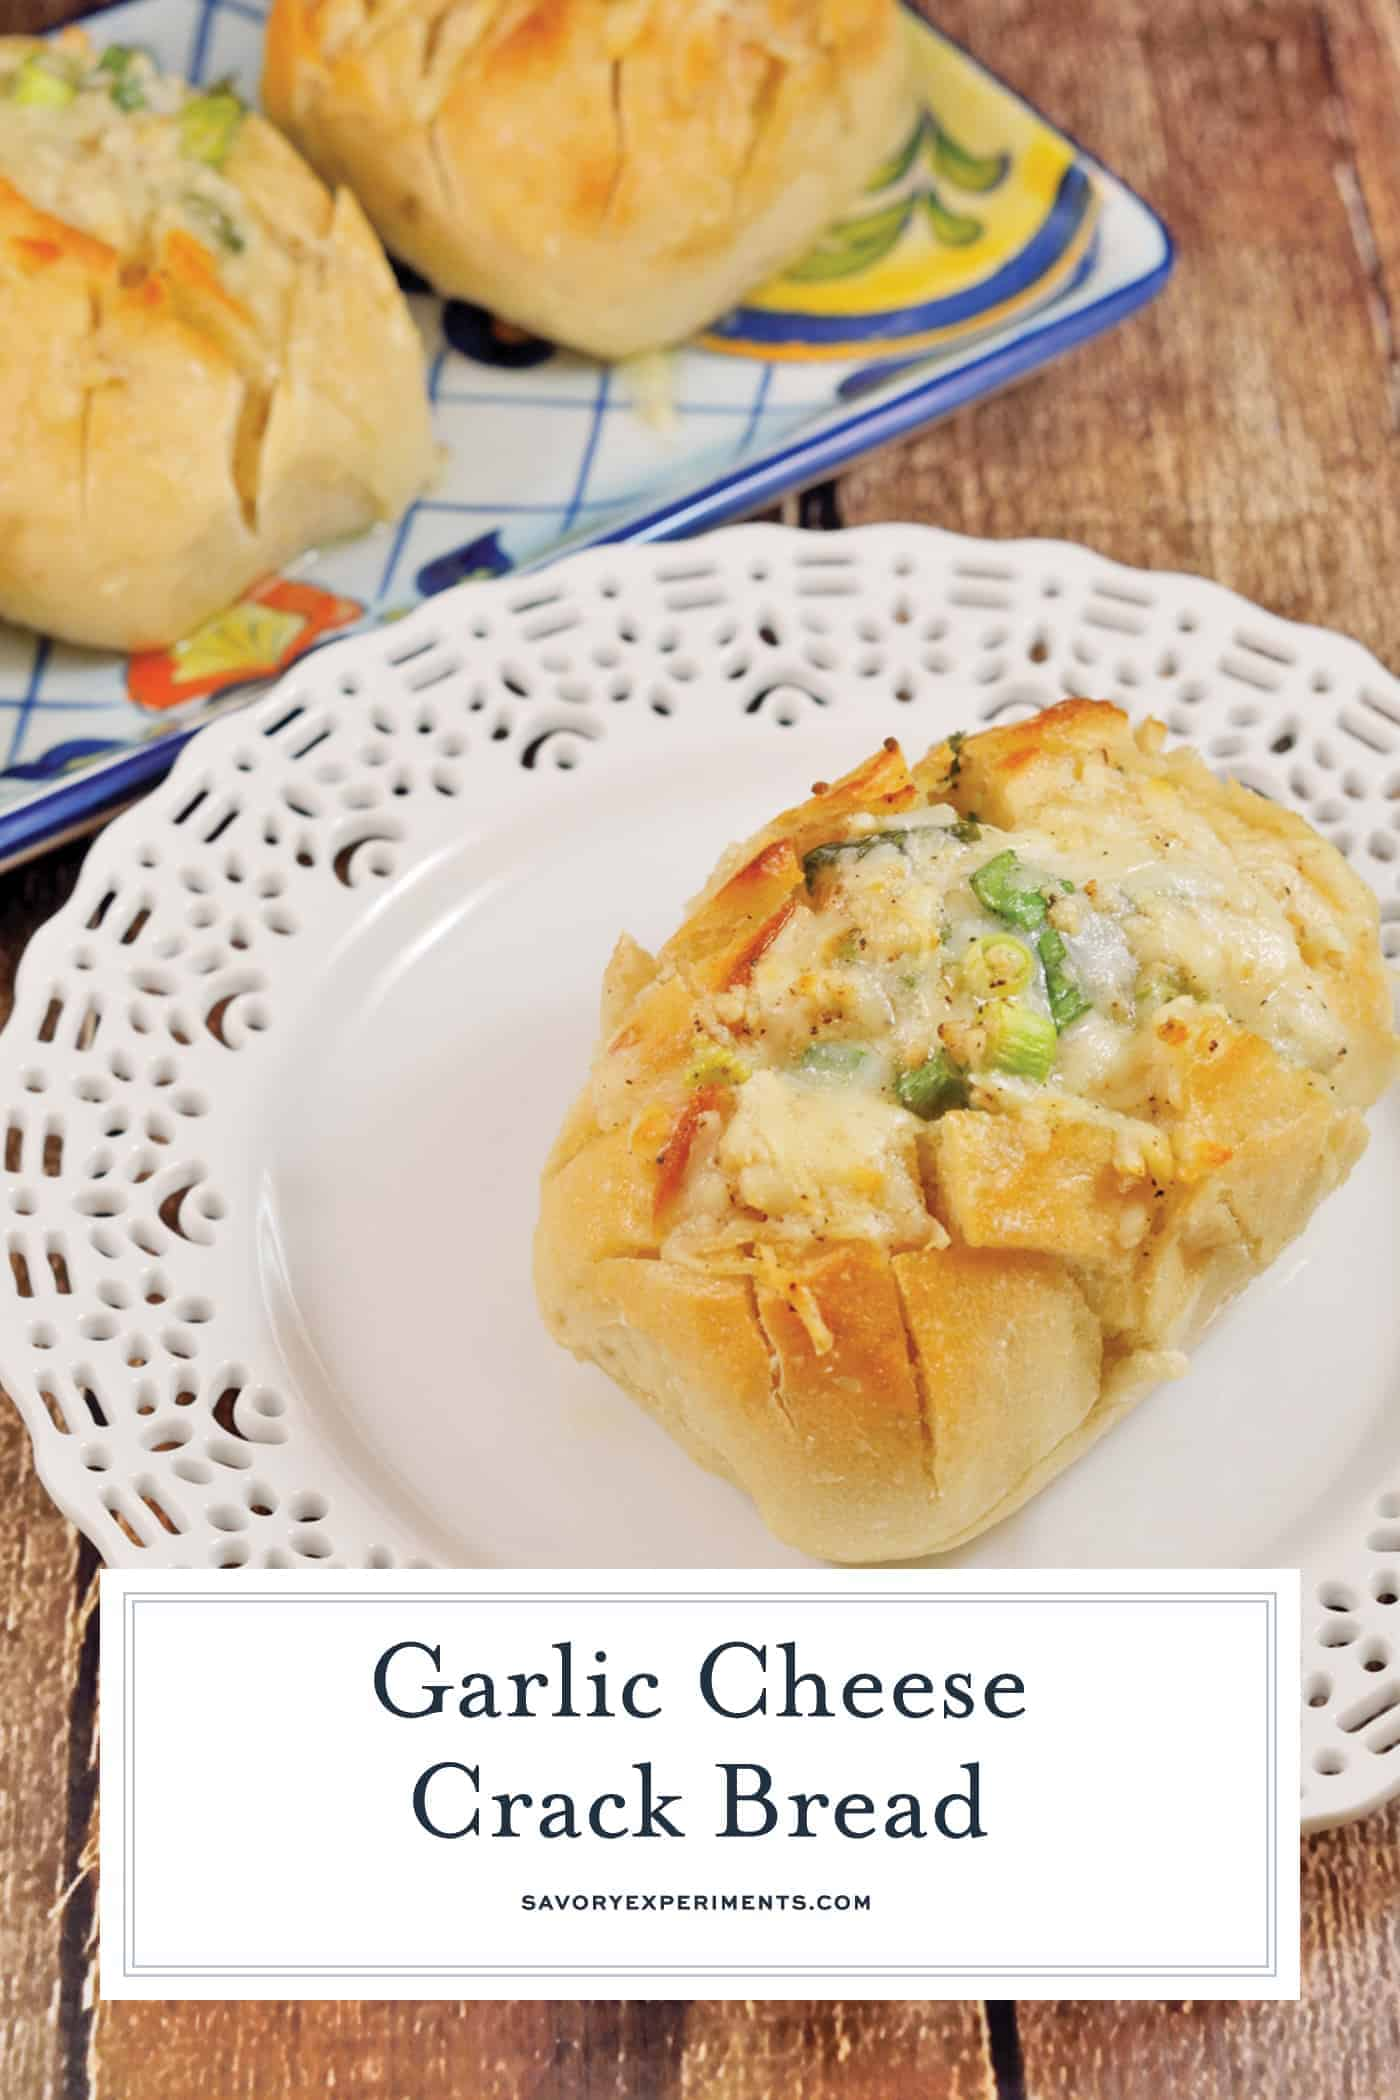 Individual Garlic Cheese Crack Bread is bread cut in a crisscross pattern, stuffed with cheese, drenched in garlic butter and baked to golden perfection.#garlicbread #crackbread www.savoryexperiments.com